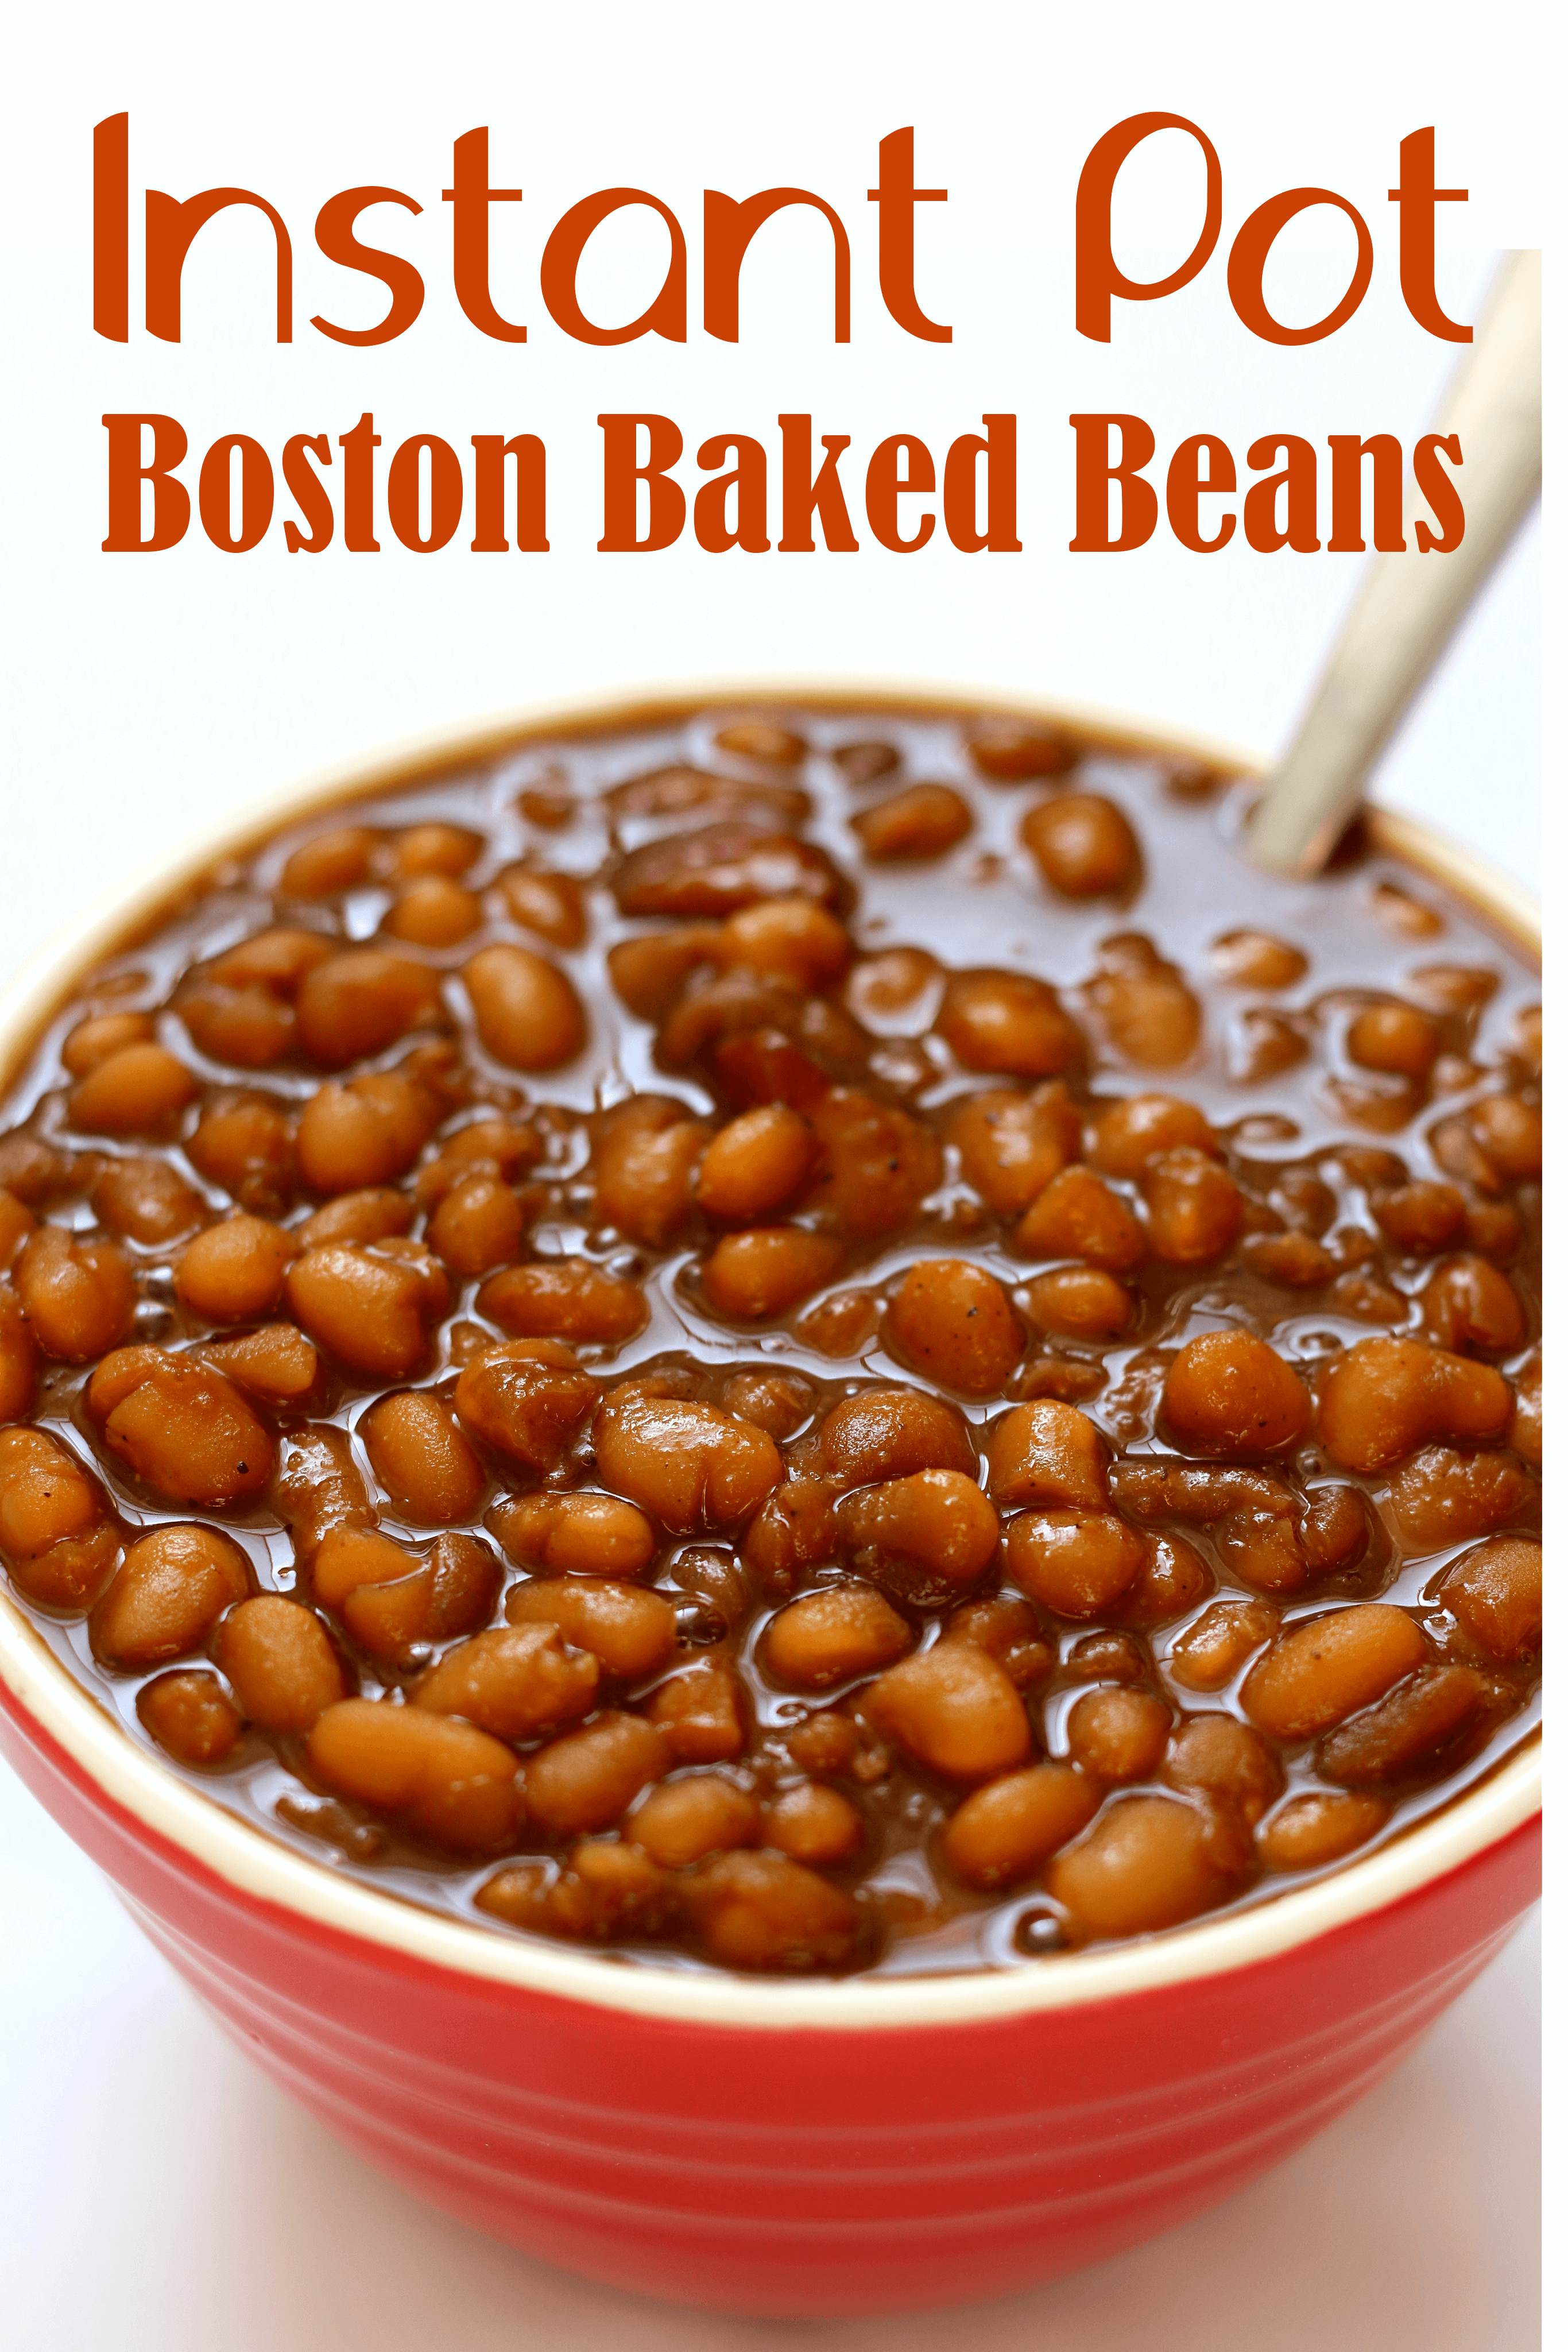 Instant Pot Boston Baked Beans 365 Days Of Slow Cooking And Pressure Cooking Recipe Boston Baked Beans Baked Beans Homemade Baked Beans